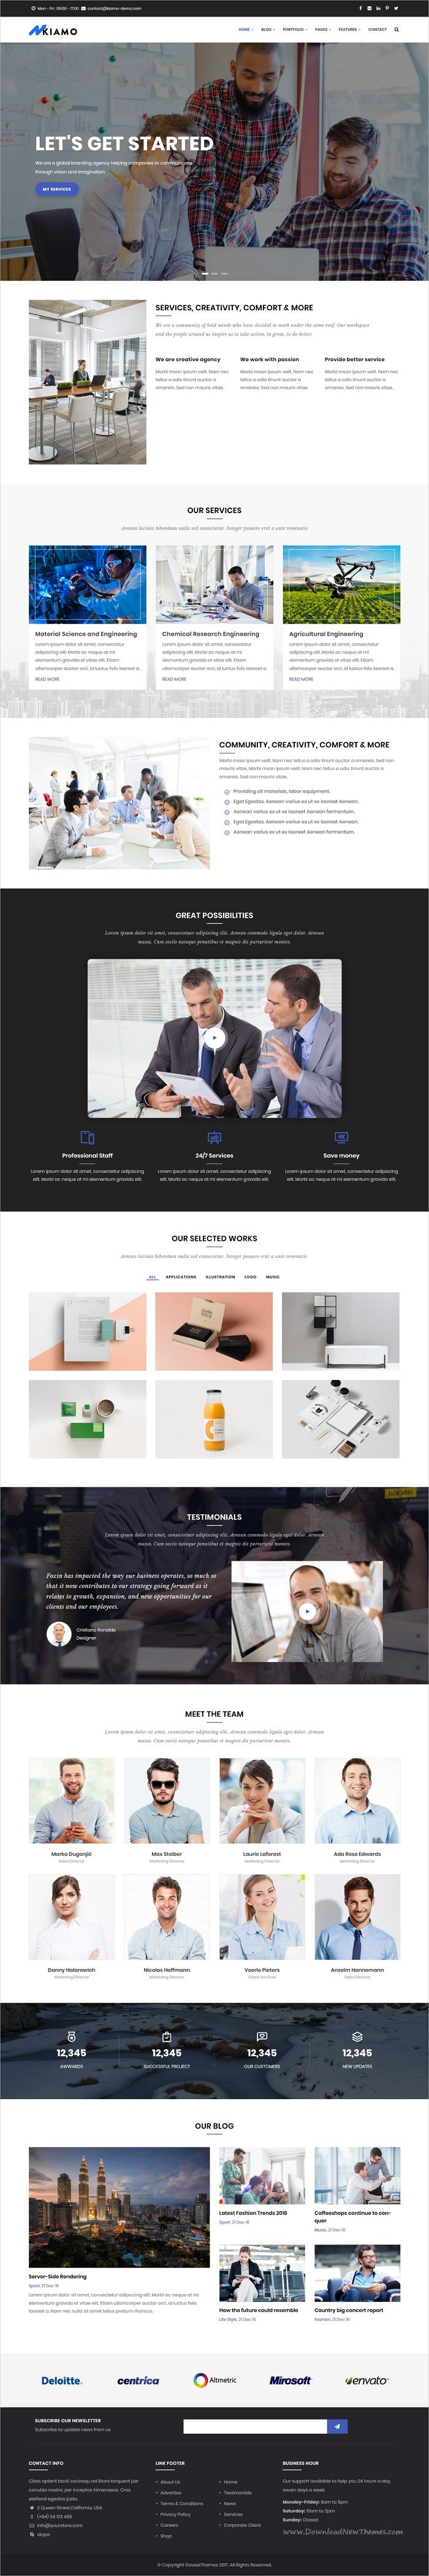 Kiamo is clean and modern #design multipurpose responsive #Drupal theme for #corporate services website with 6 niche homepage layouts download now..